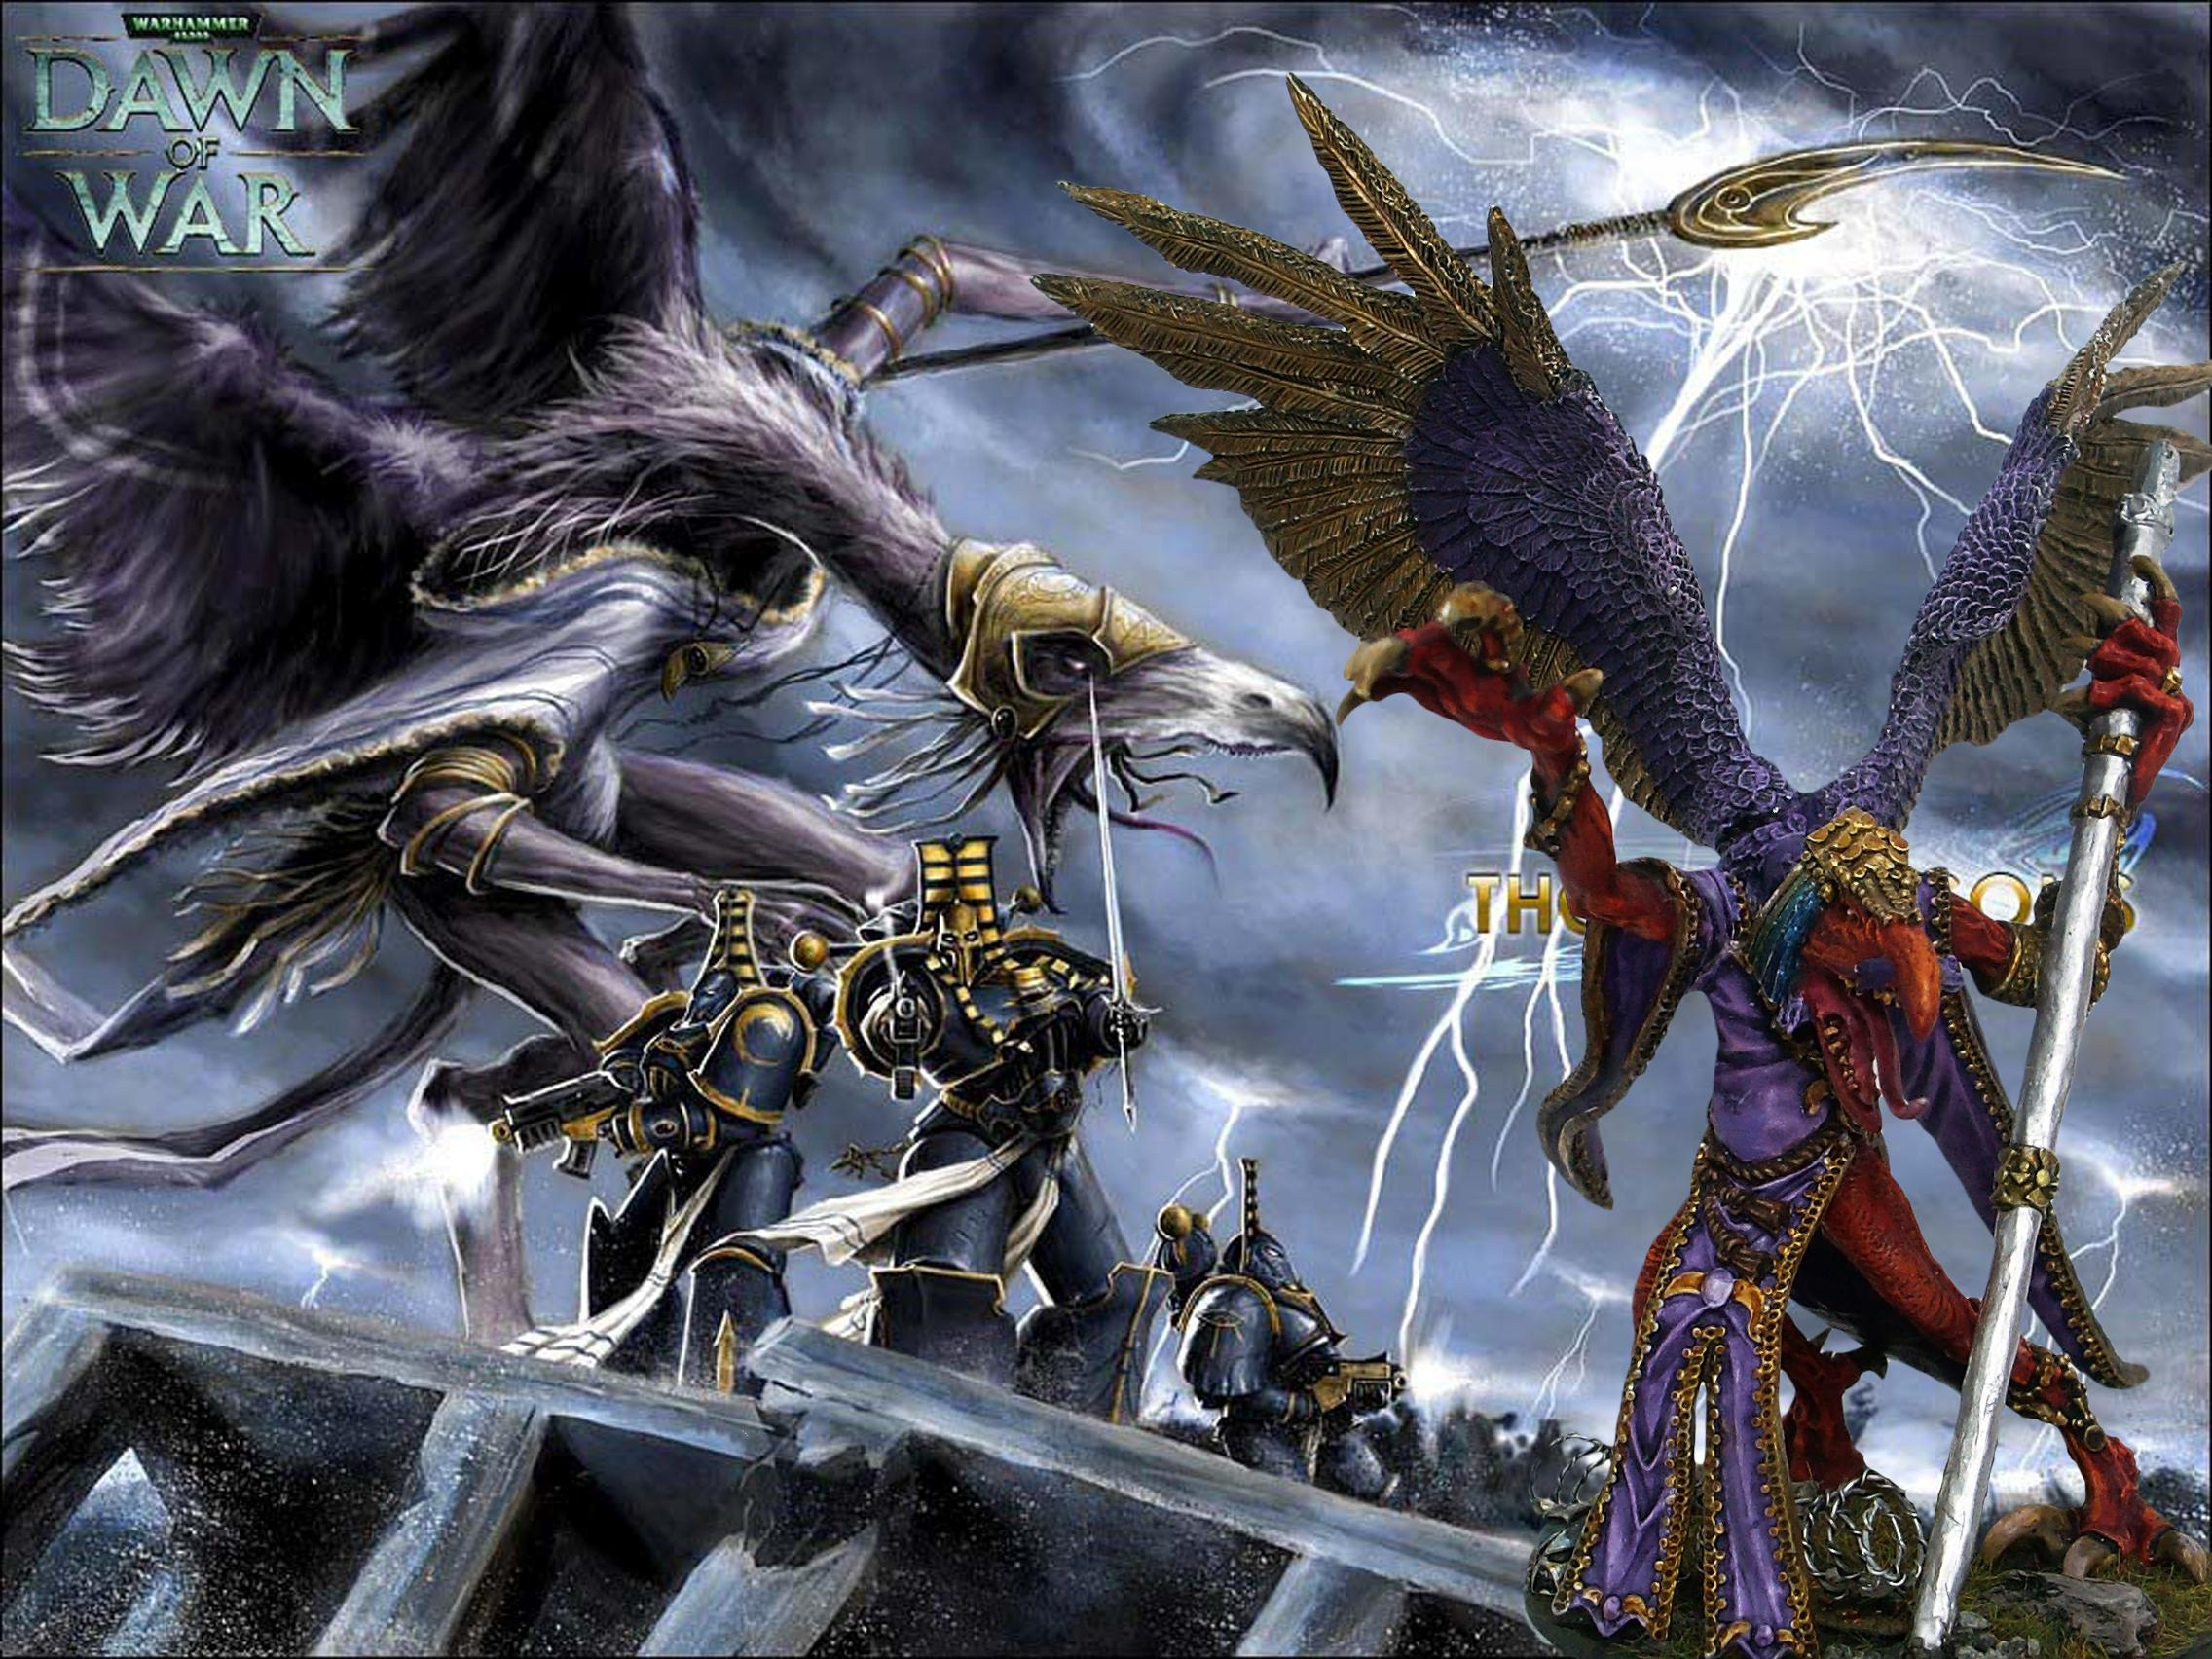 Chaos, Chaos Daemons, Chaos Space Marines, Conversion, Daemons, Greater Demon, Khorne, Lord Of Change, The Oracle, Tzeench, Warhammer 40,000